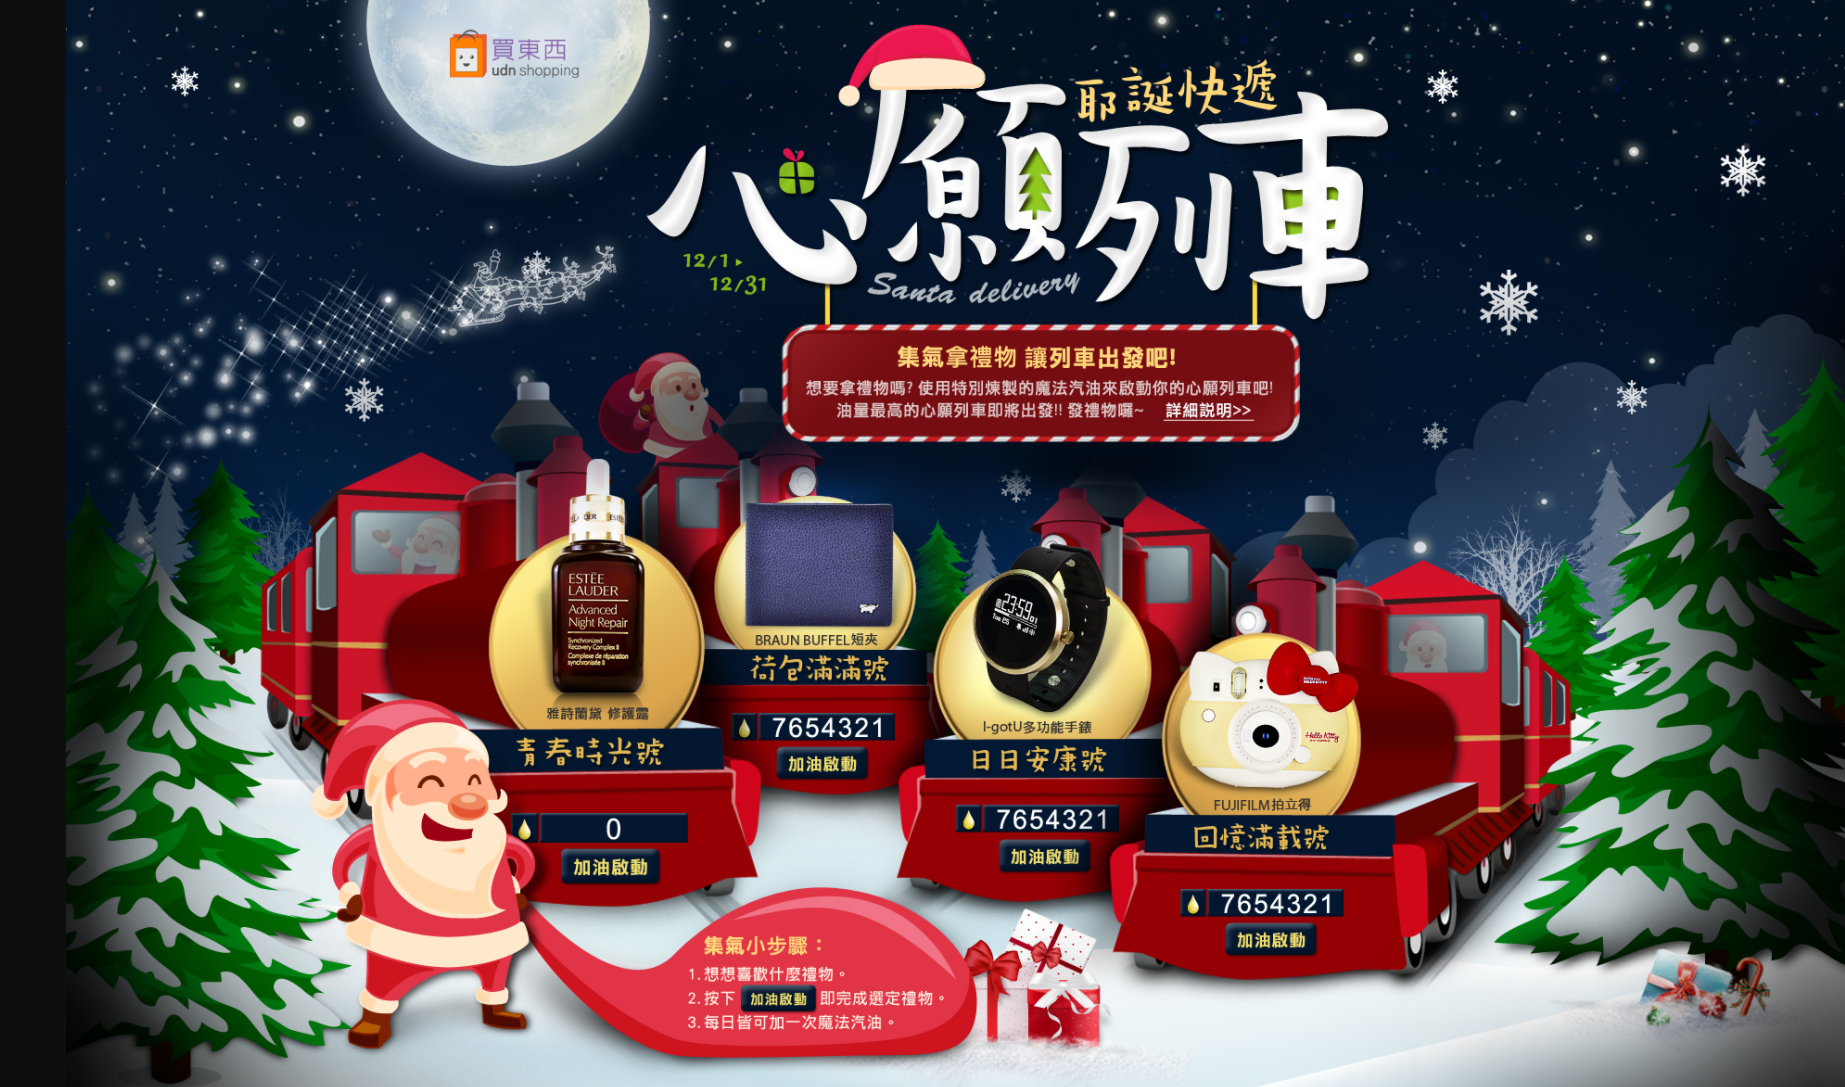 Image by 逸菁 胡 on Edm Banner design, Christmas ornaments